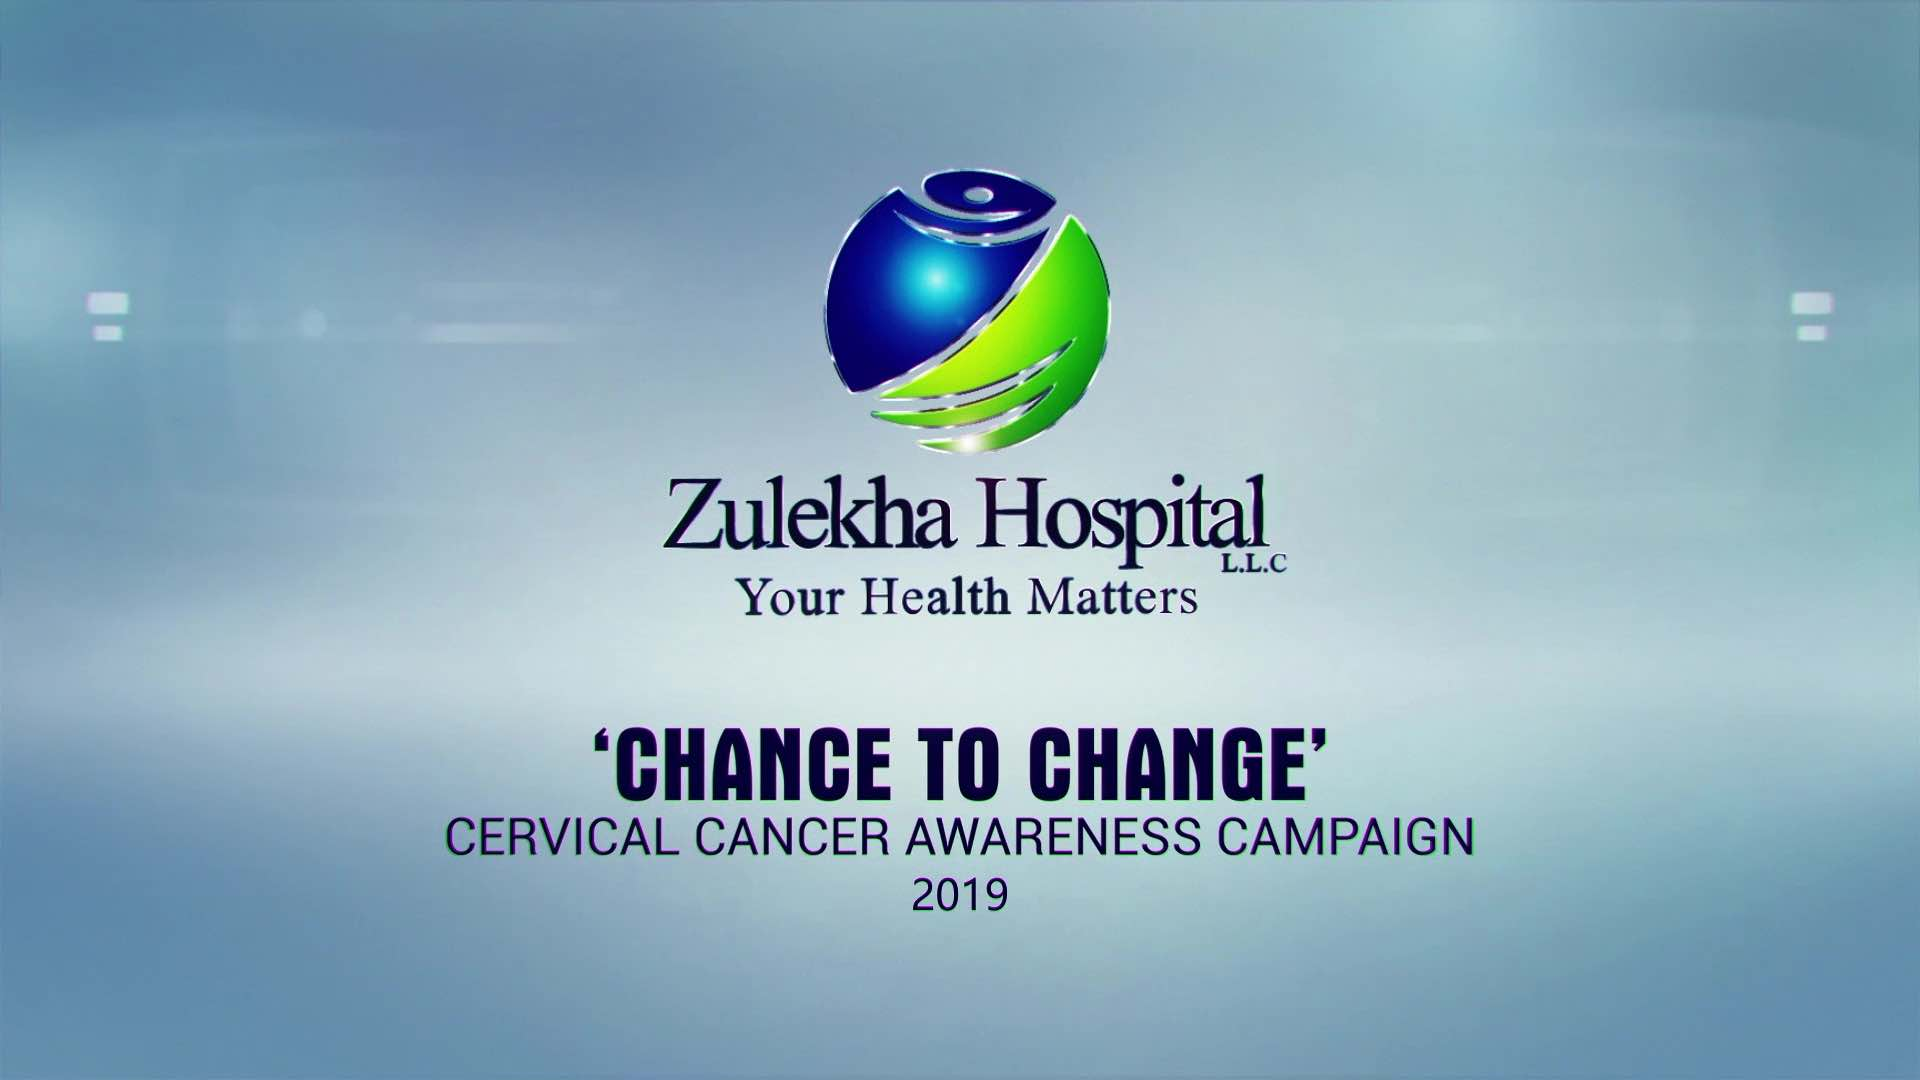 Chance To Change_Cervical Cancer Awareness Campaign 2019_Zulekha Hospital